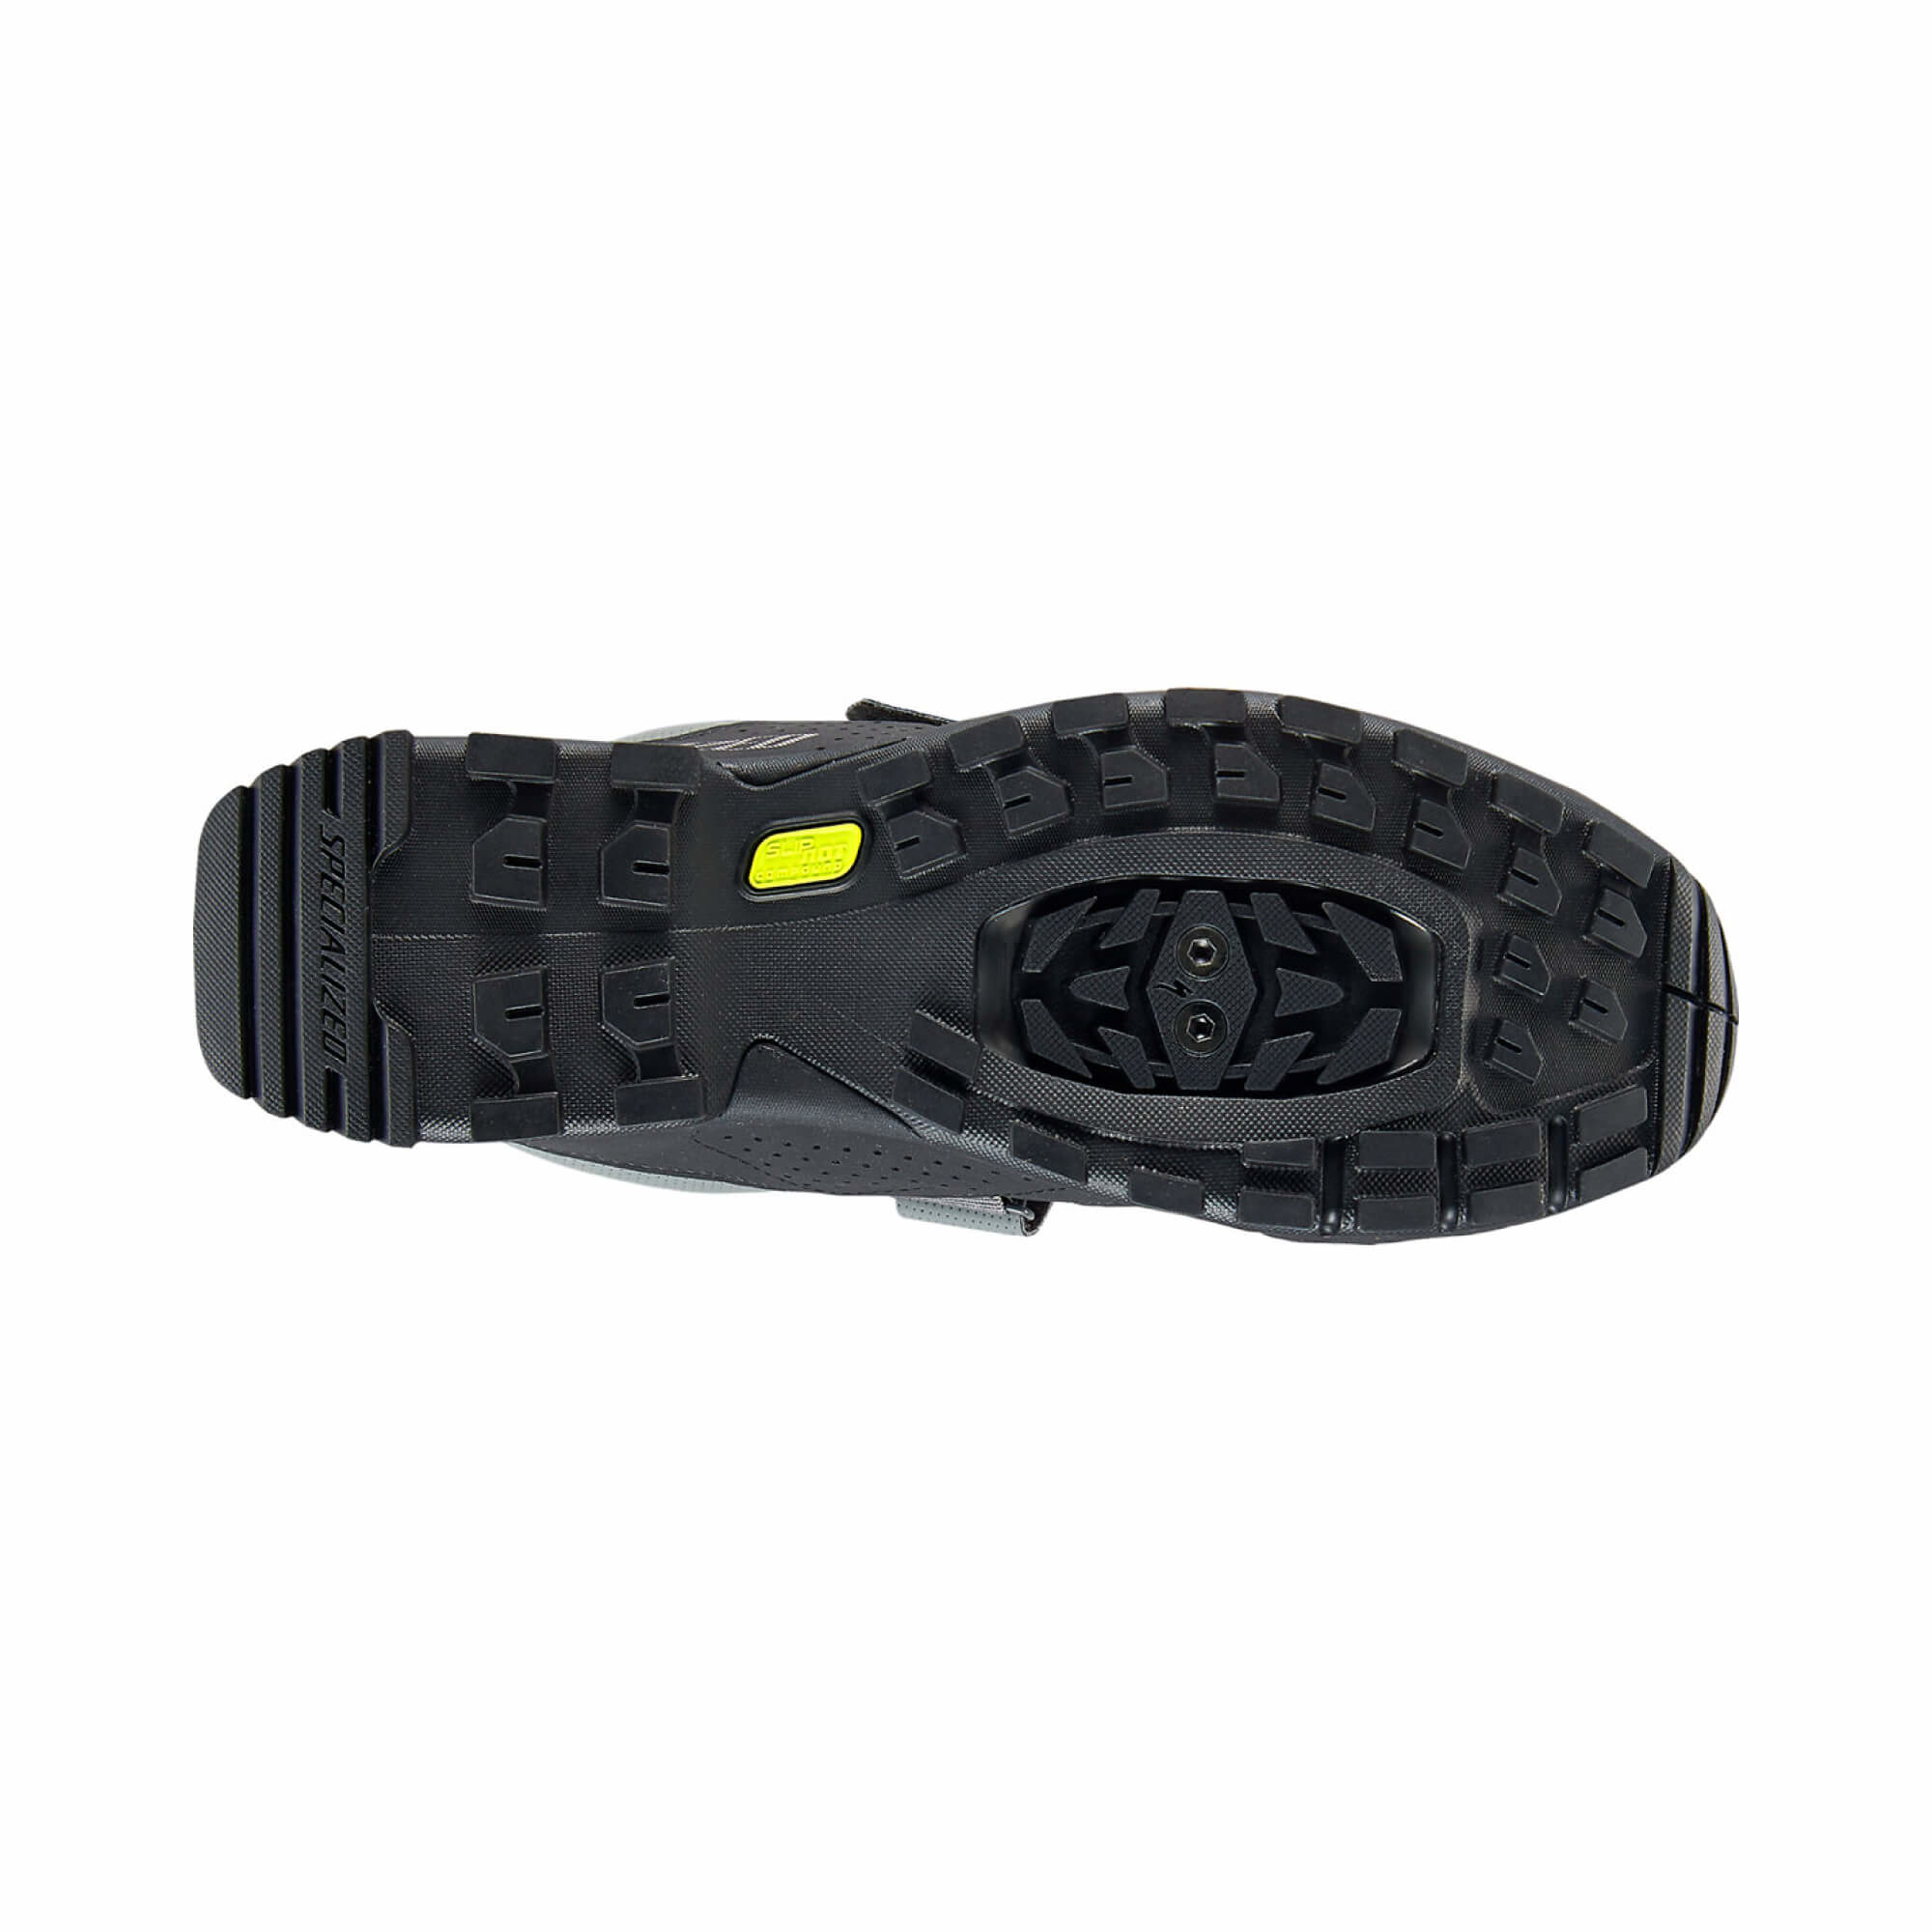 RIME 1.0 Mountain Bike Shoes-2